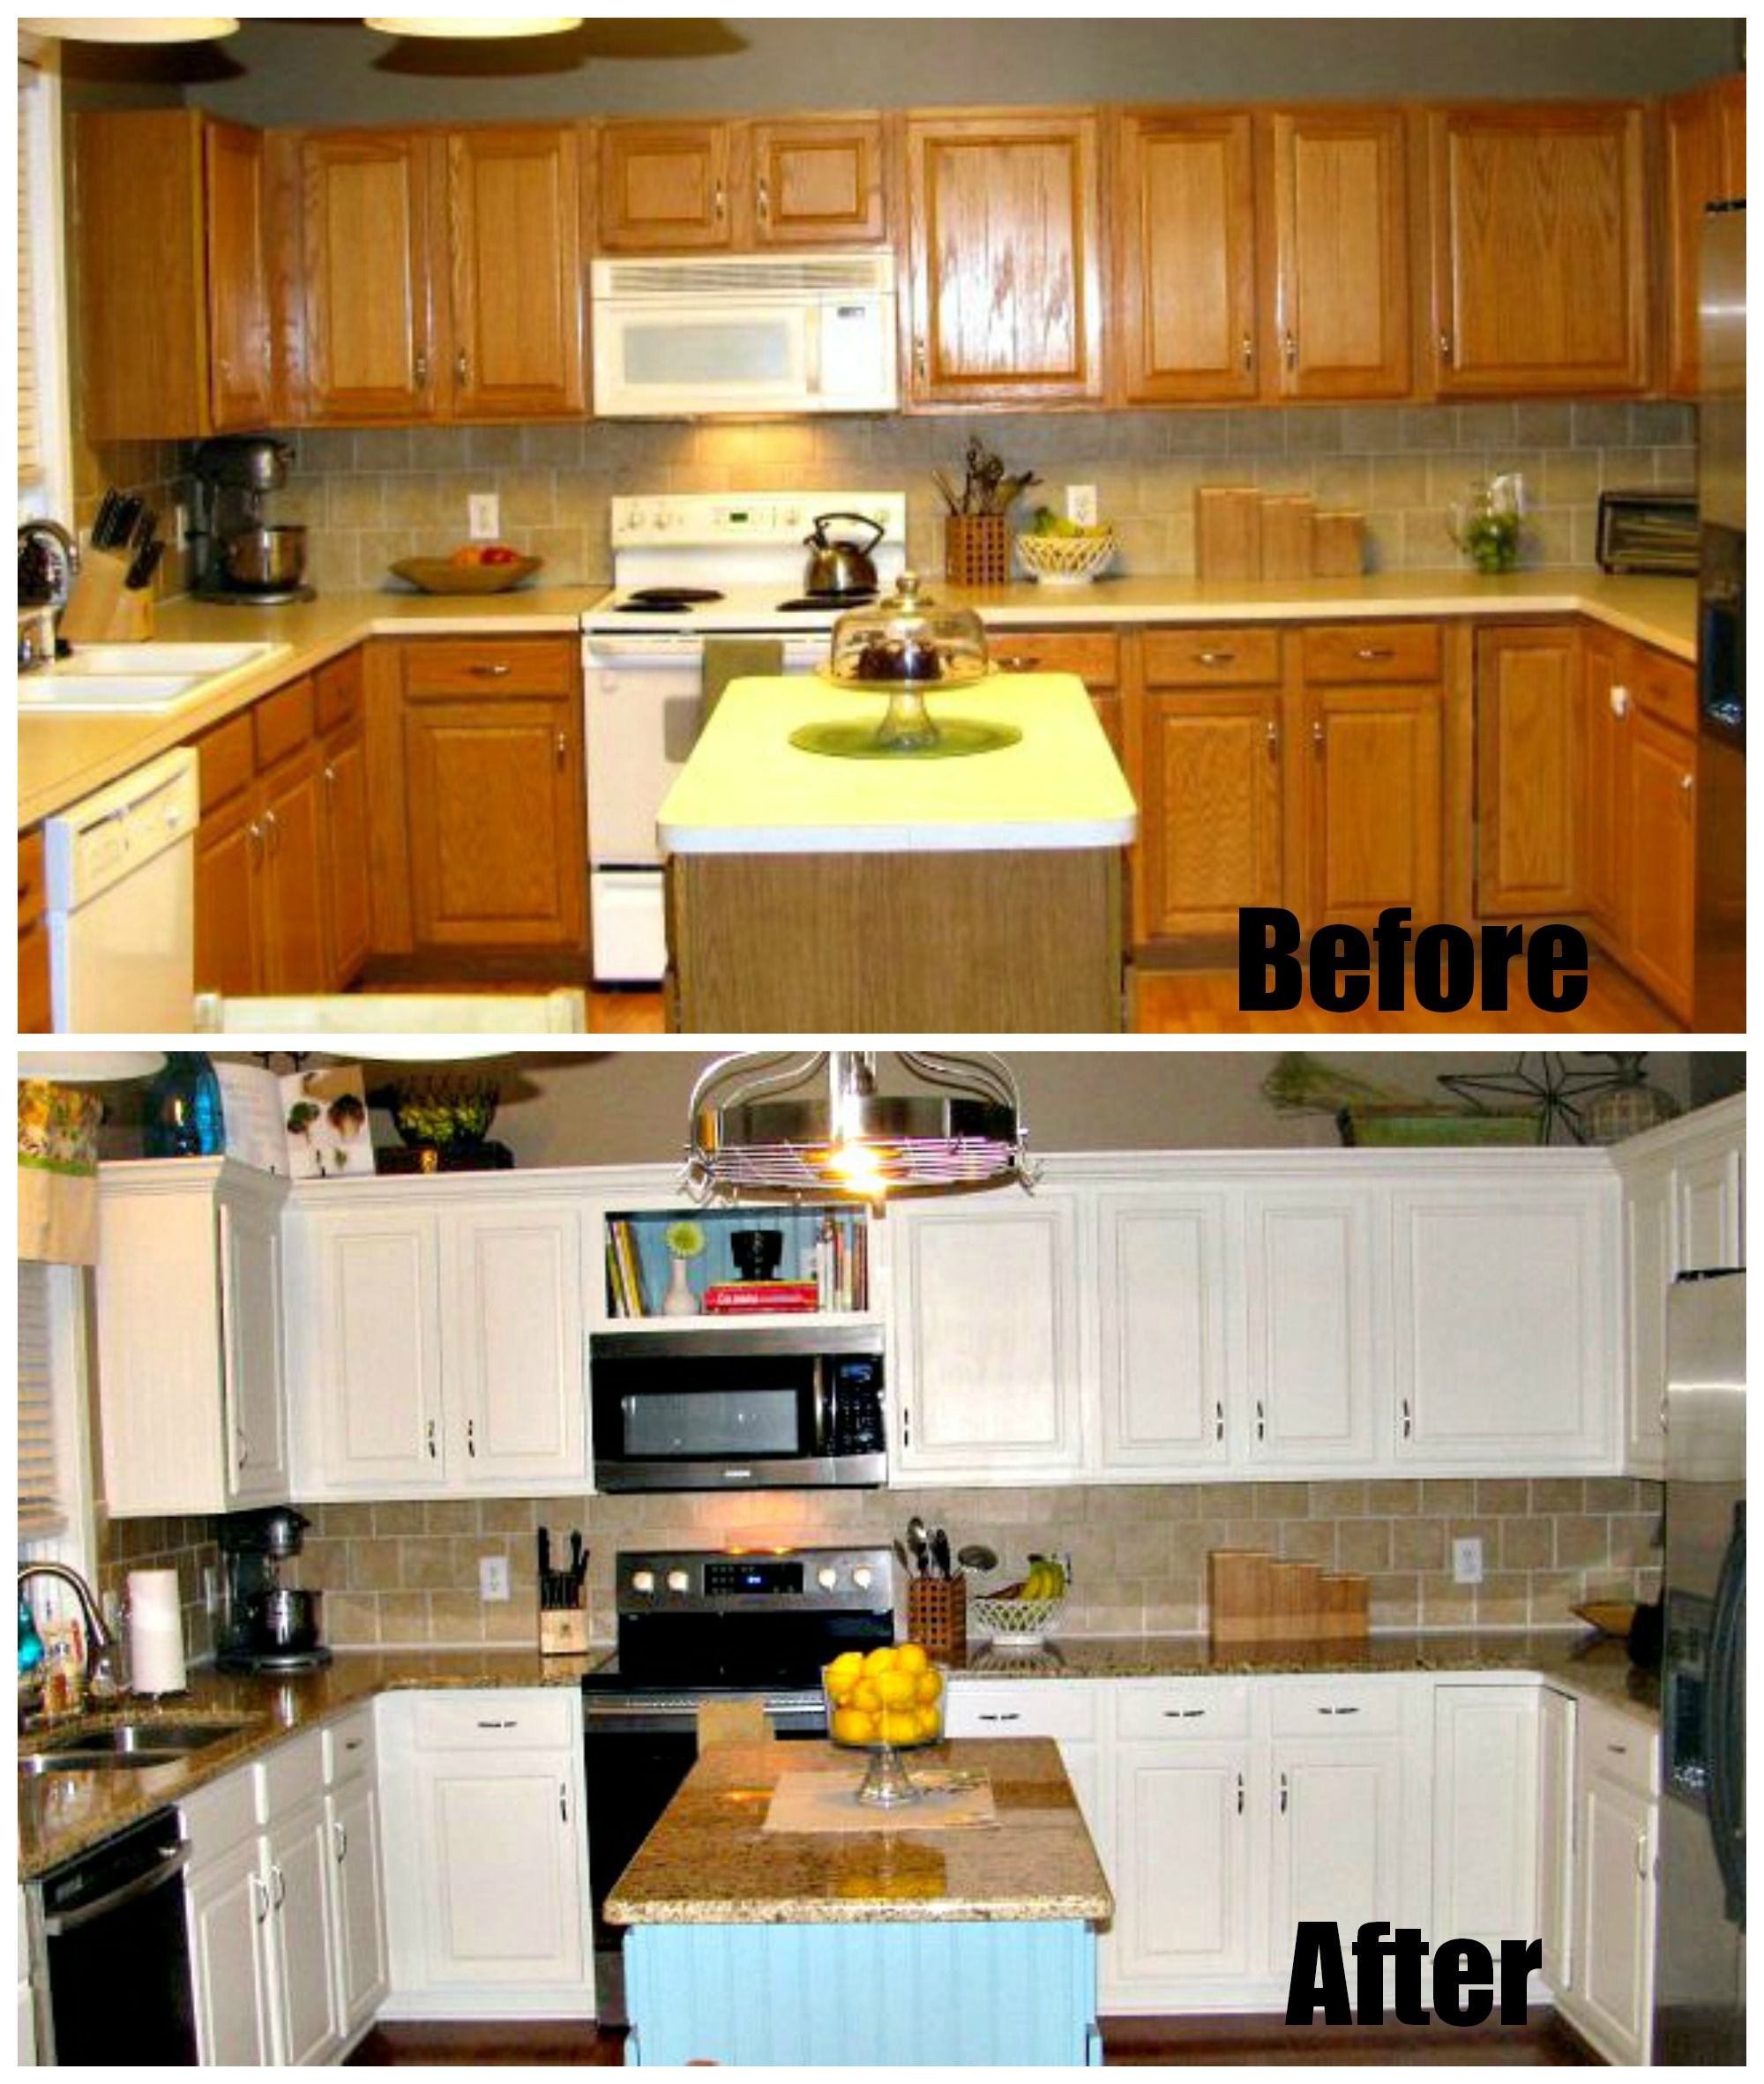 Kitchen Cabinet Ideas On A Budget: DIY, Low Budget, Kitchen Remodel